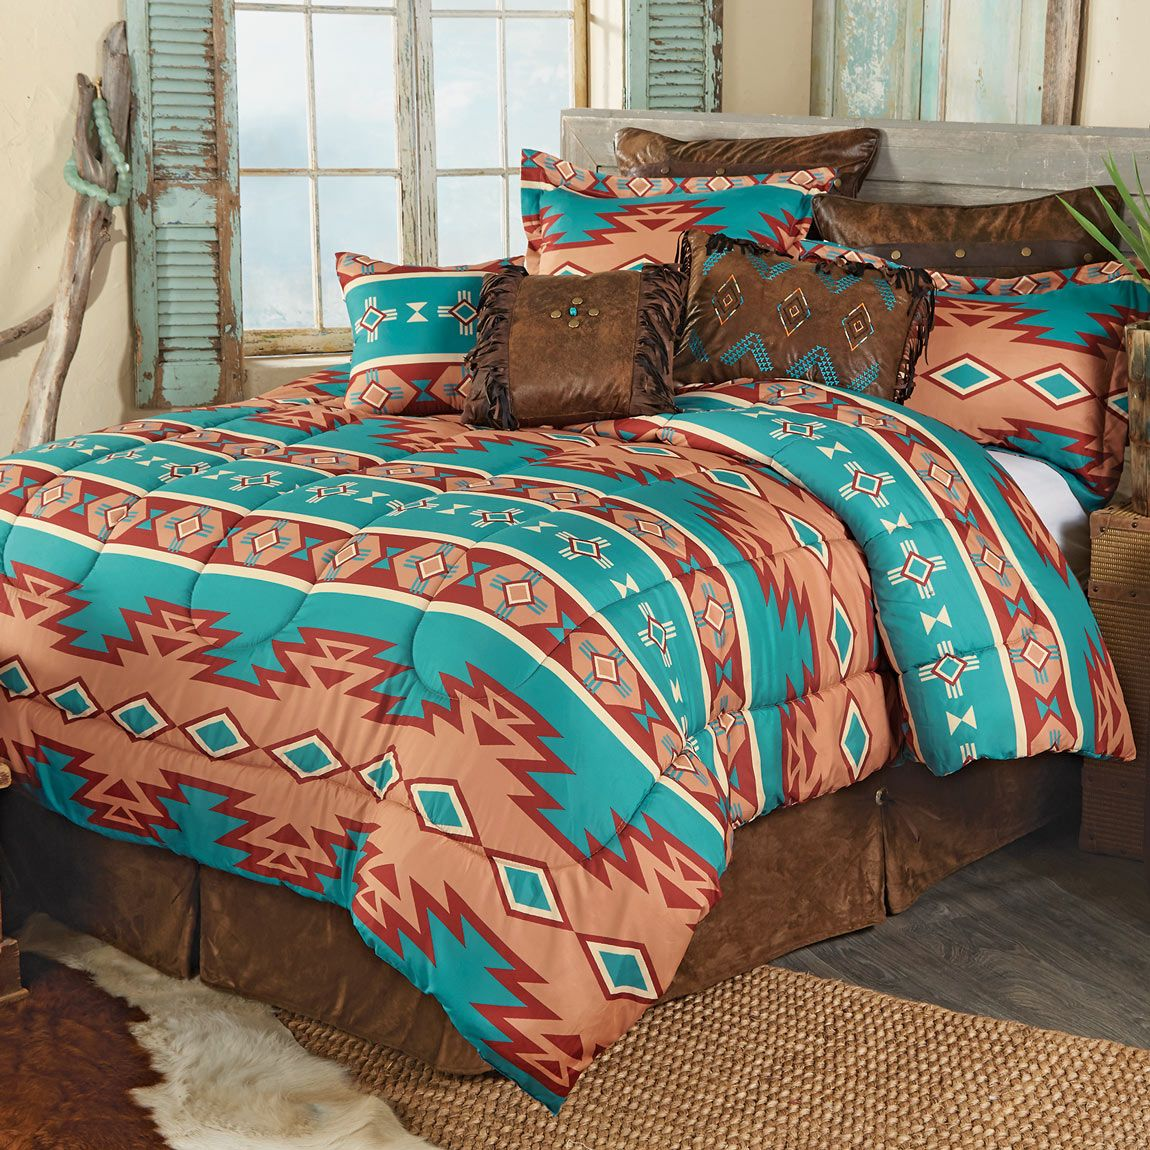 Adobe Canyon Bed Set - Queen - CLEARANCE